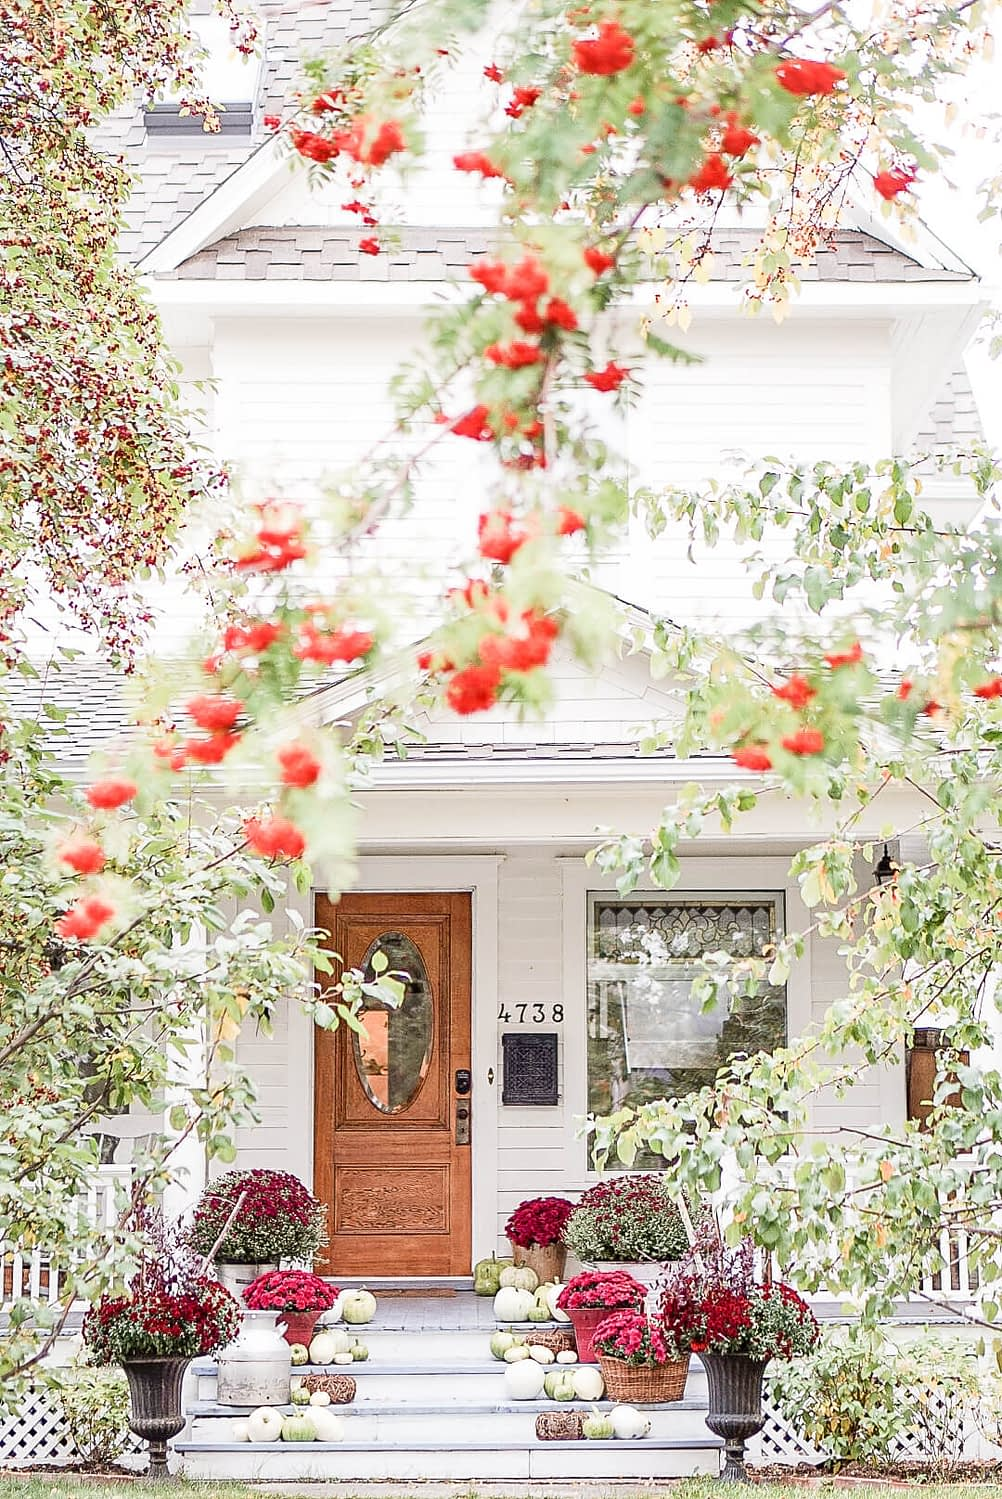 Fall-Front-Entrance-white-house-Autumn-Outdoor-fall-farmouse-decor Home-Tour-birch-wood-mums-and-pumkins-foliage-pink-flowers